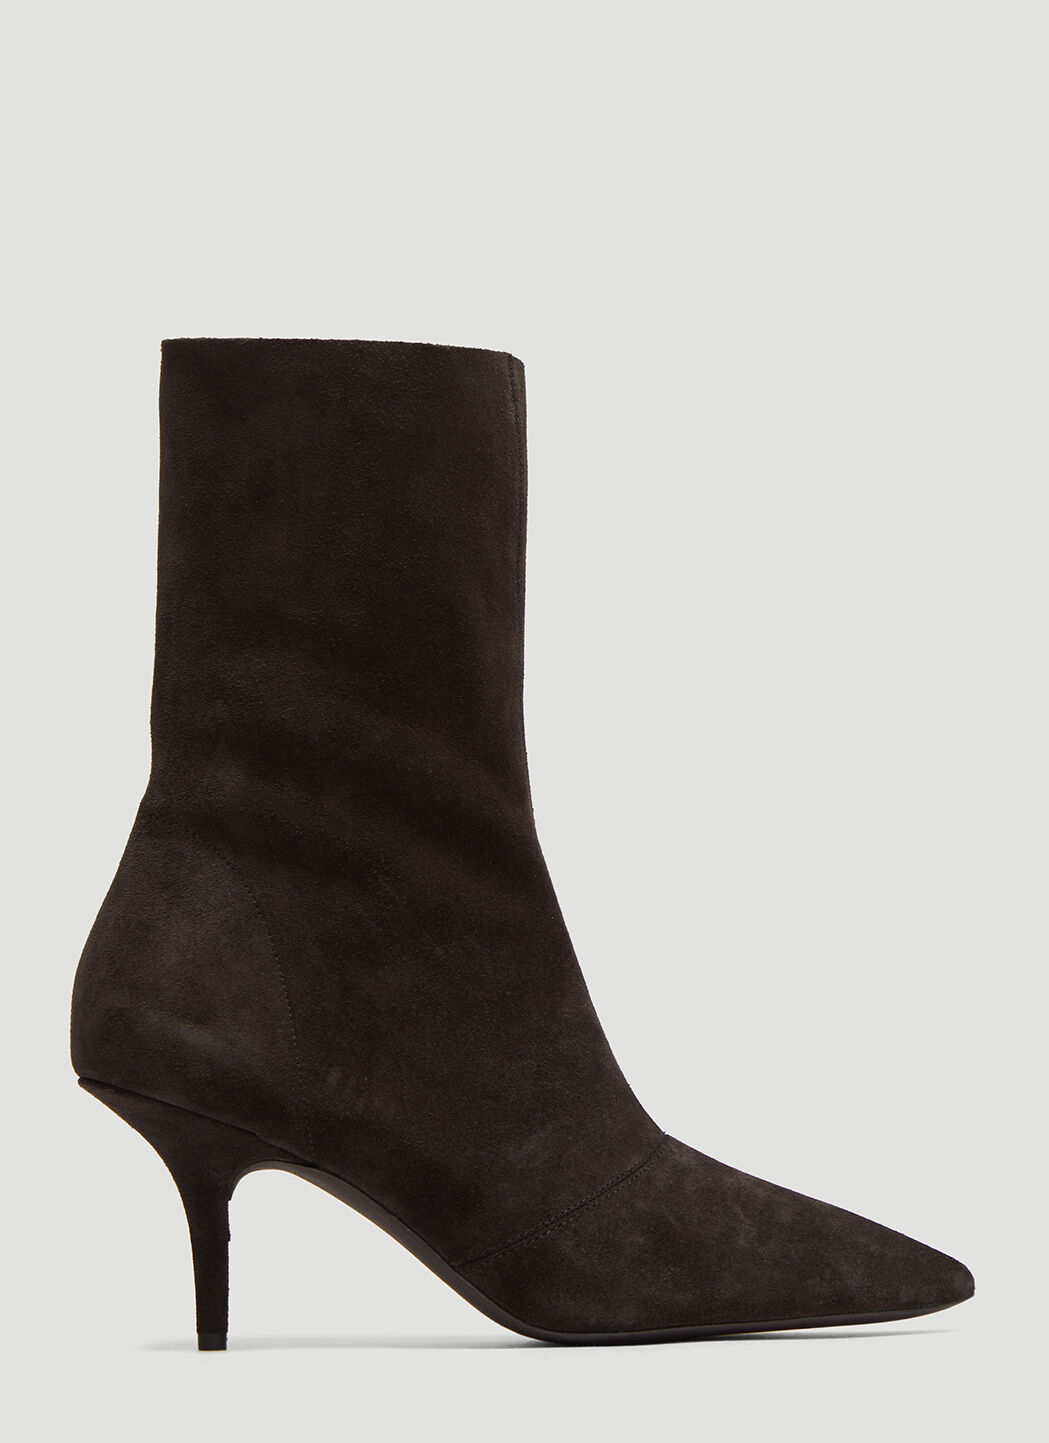 Yeezy Suede Ankle Boots in Black